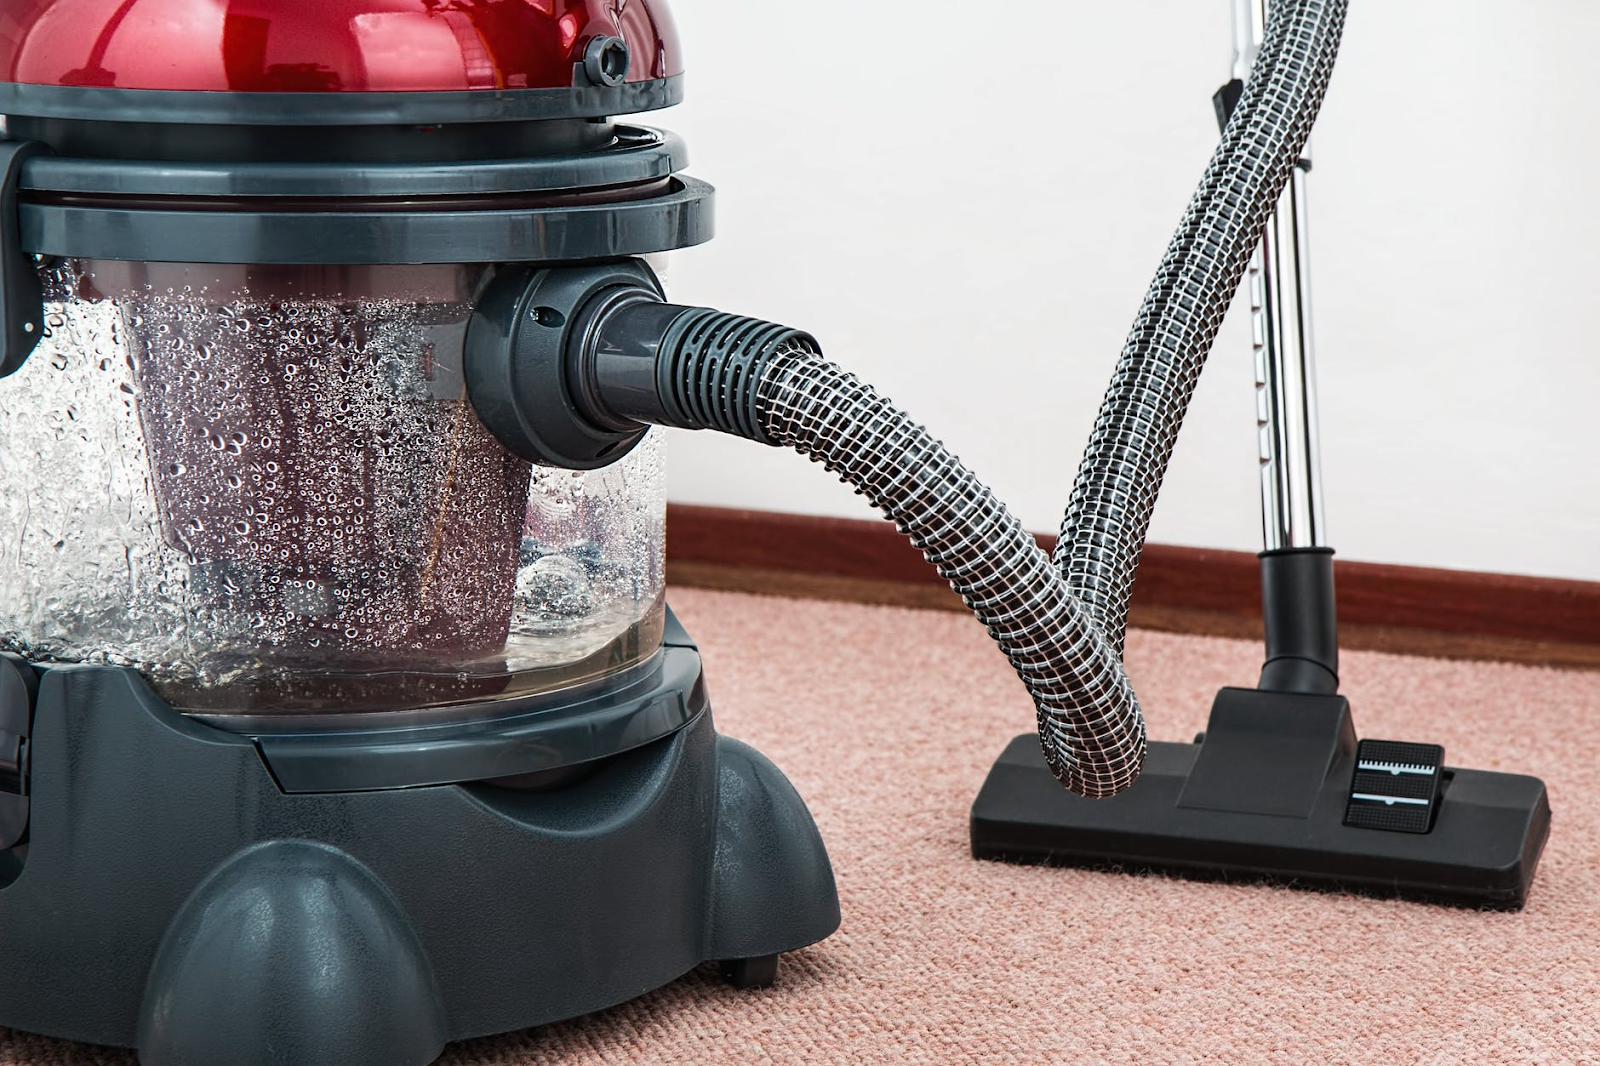 5 Reason Why You Should Have Regular Carpet Cleaning